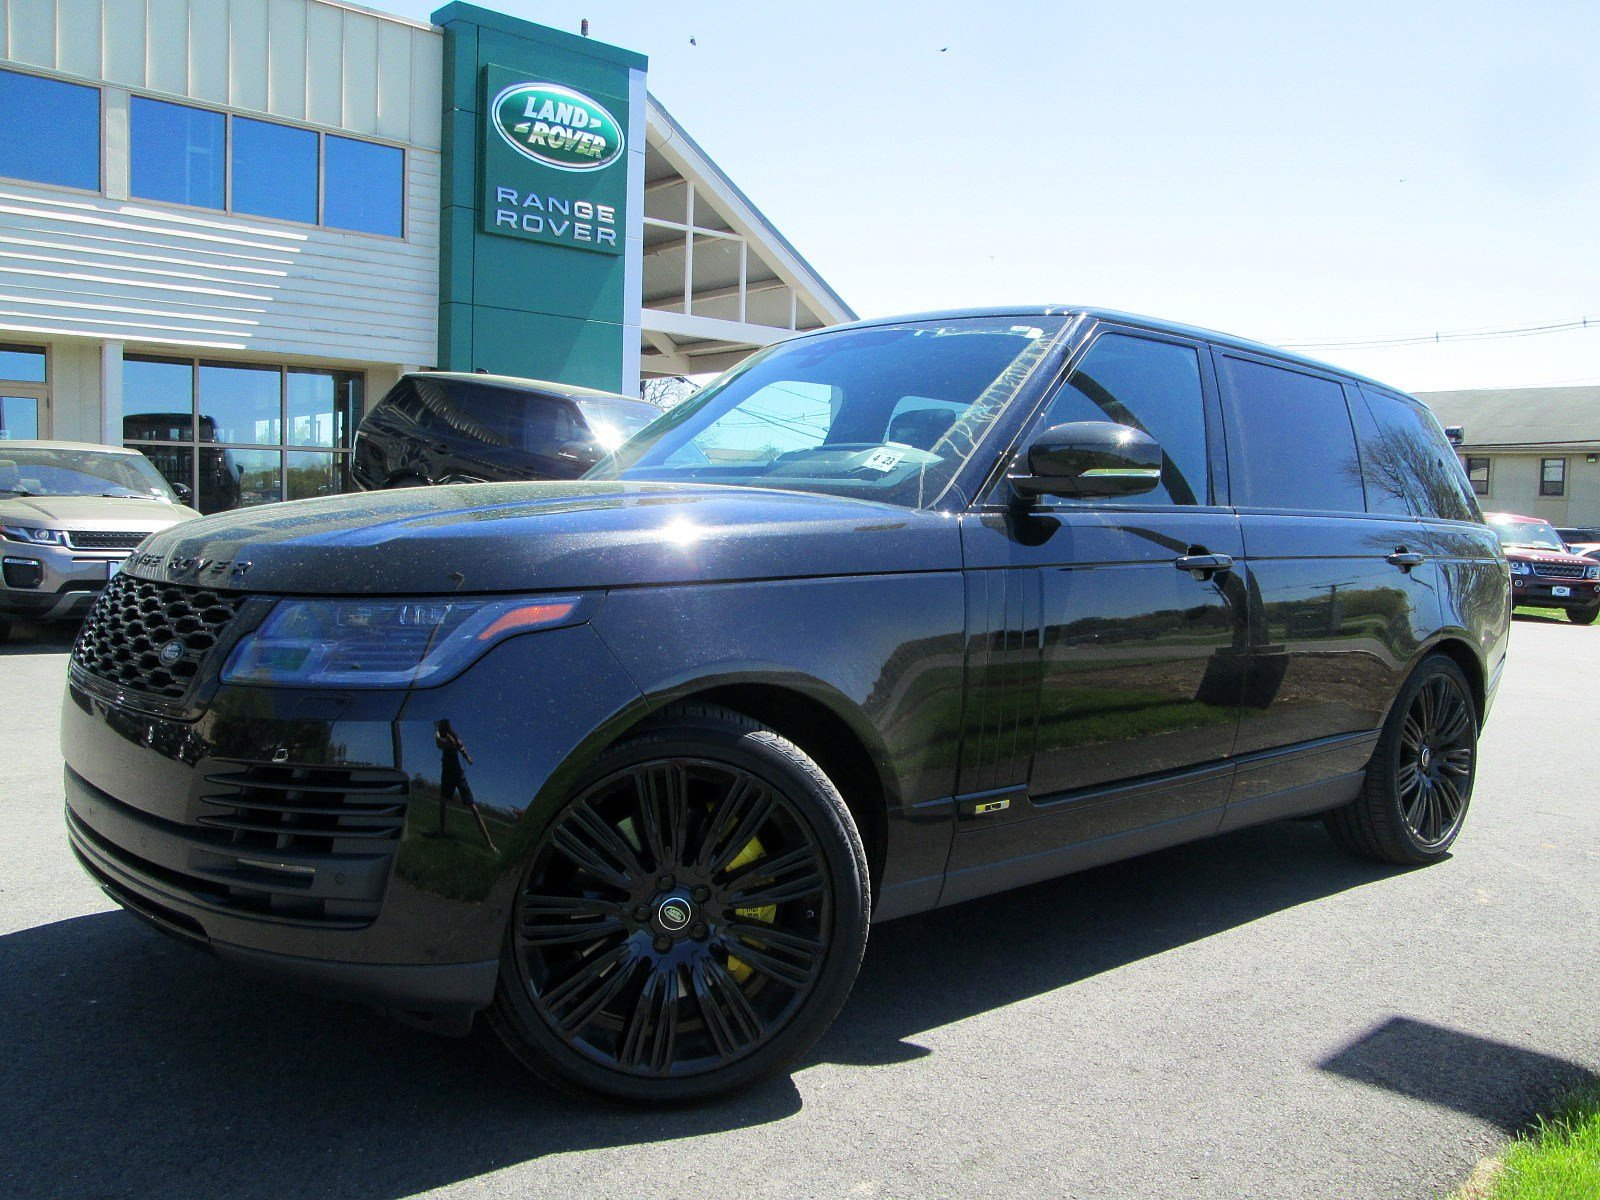 Certified Pre-Owned 2018 Land Rover Range Rover SC